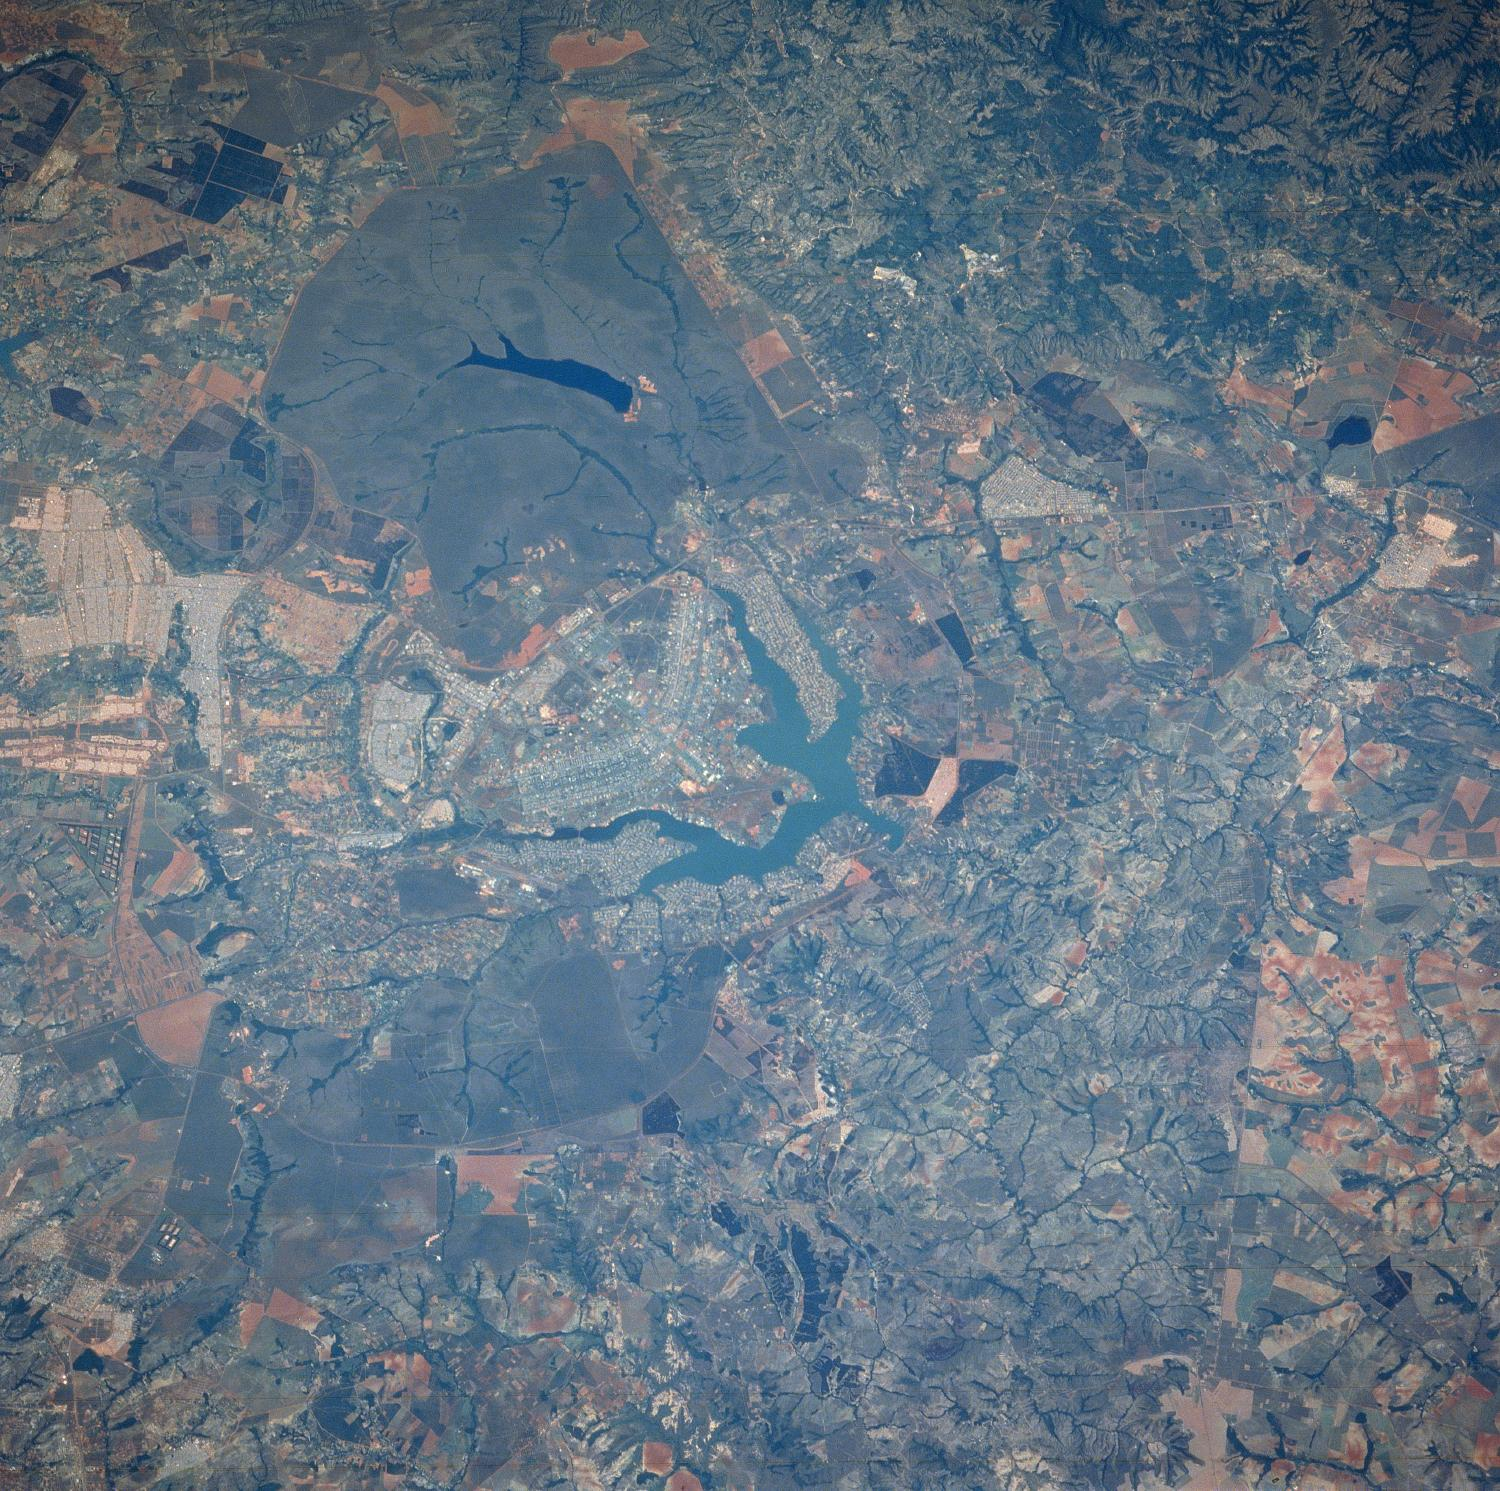 Satellite Image, Photo of Brasilia City, Brazil